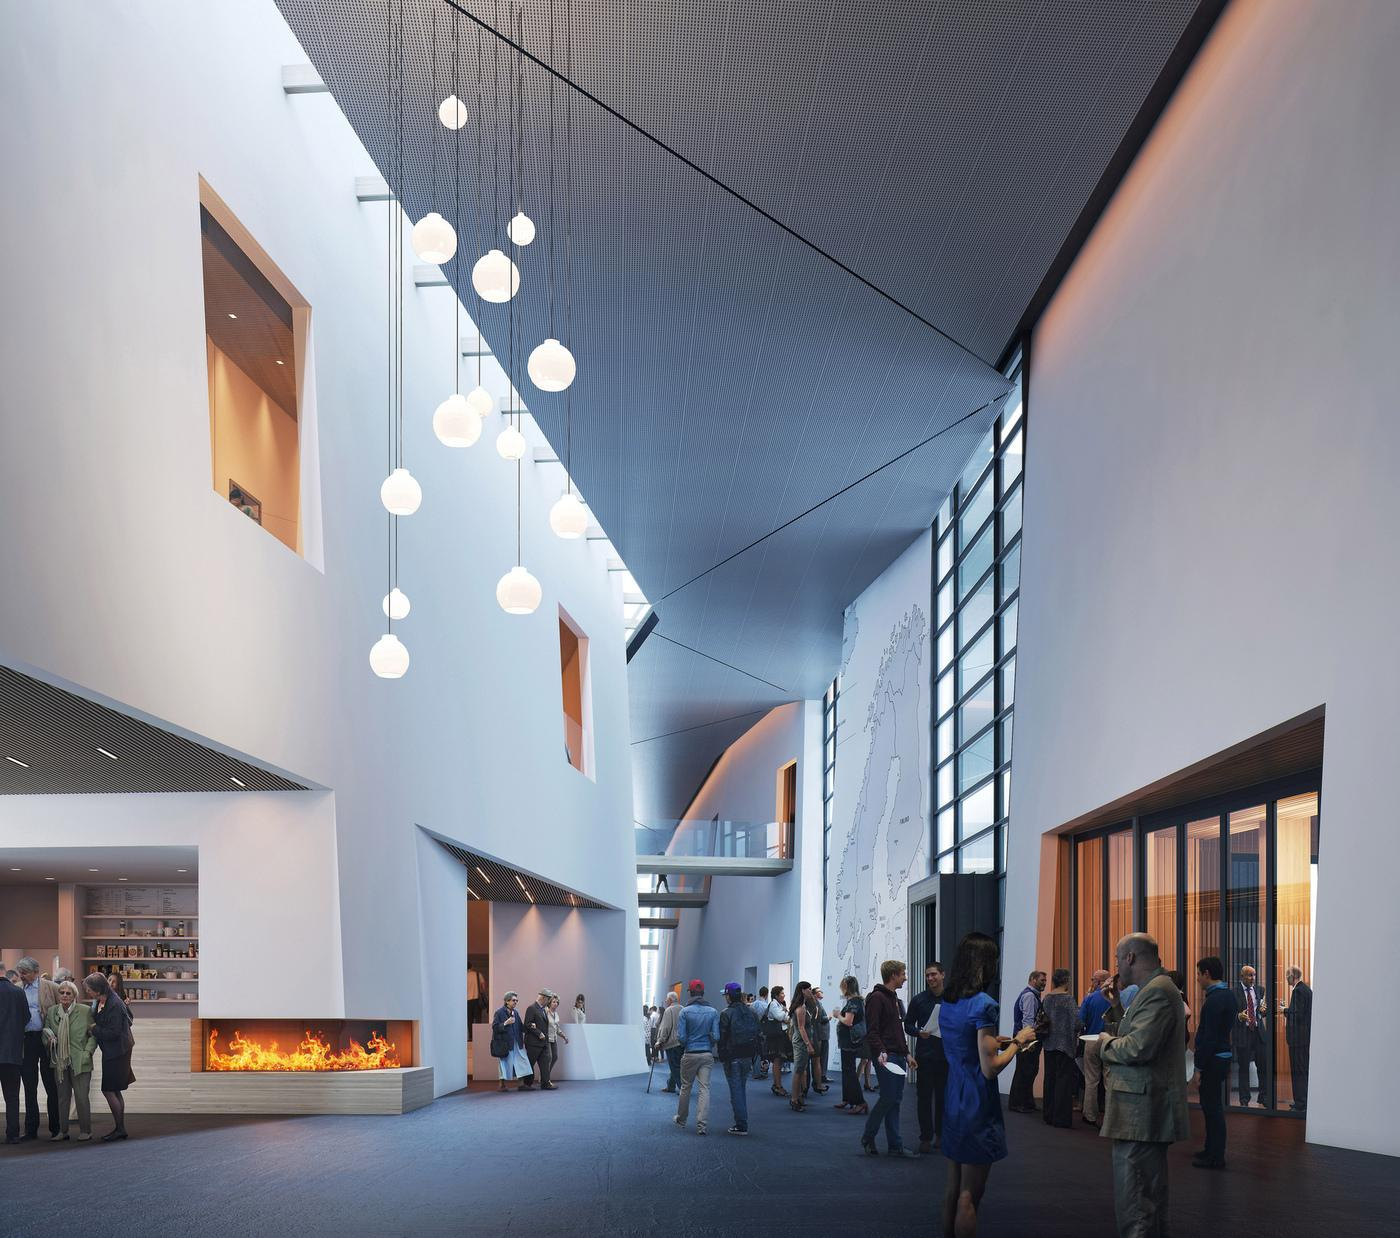 <p>Head to Ballard the weekend of May 5th for the New Nordic Heritage Museum Grand Opening. The modern 57,000-square foot building on Market Street showcases Nordic and Nordic American art, community and history along with educational opportunities. (Image: MIR)</p>